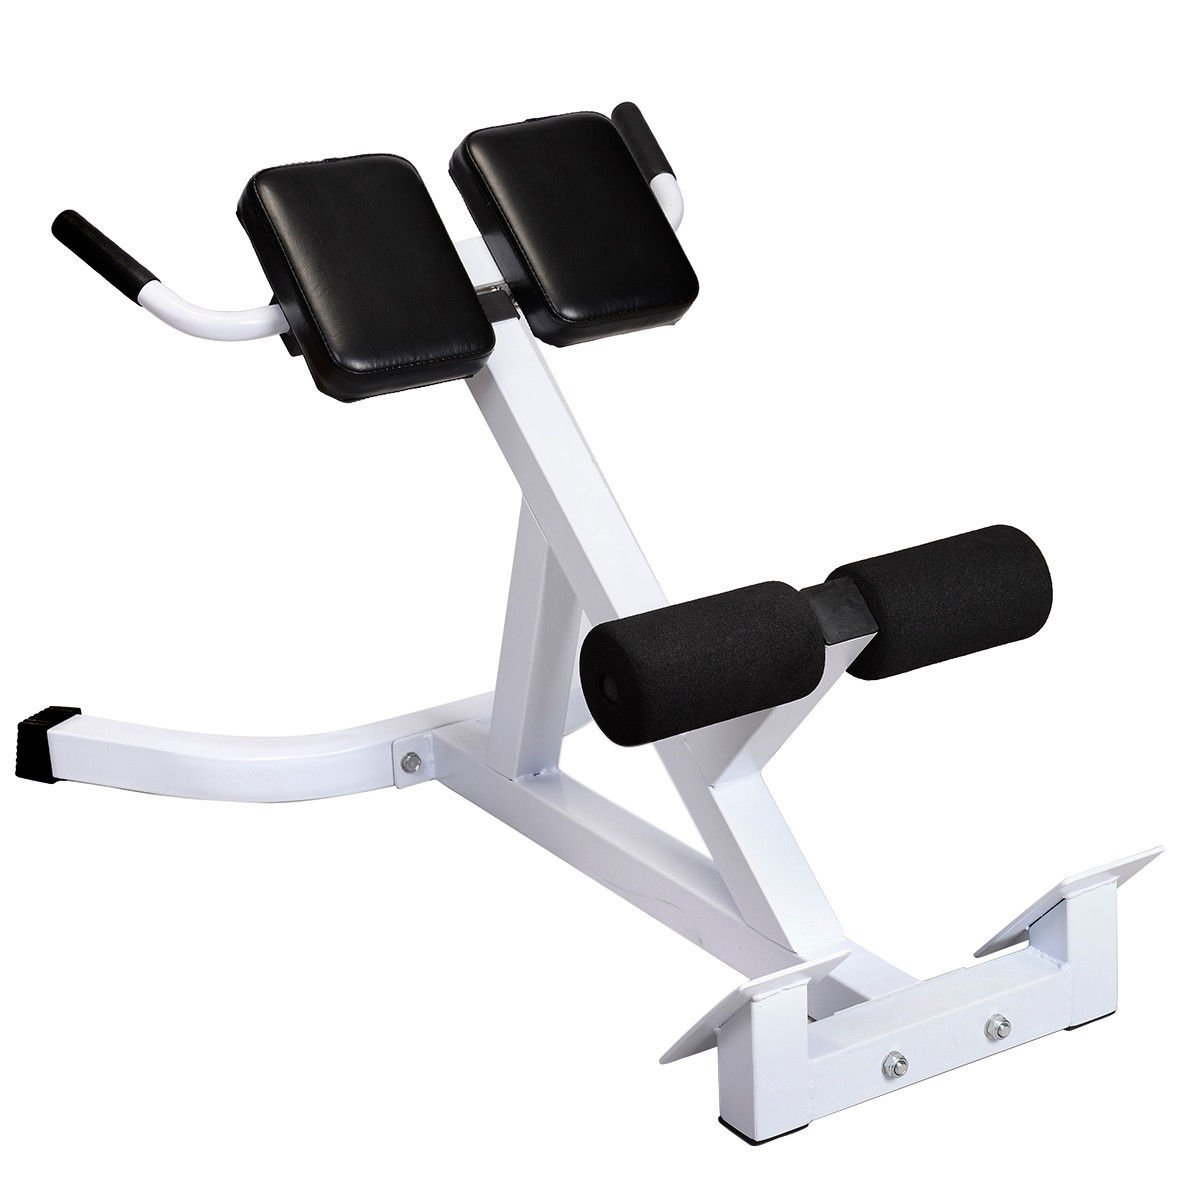 Hyper Extension Hyperextension Back Exercise AB Bench Gym Abdominal Roman Chair